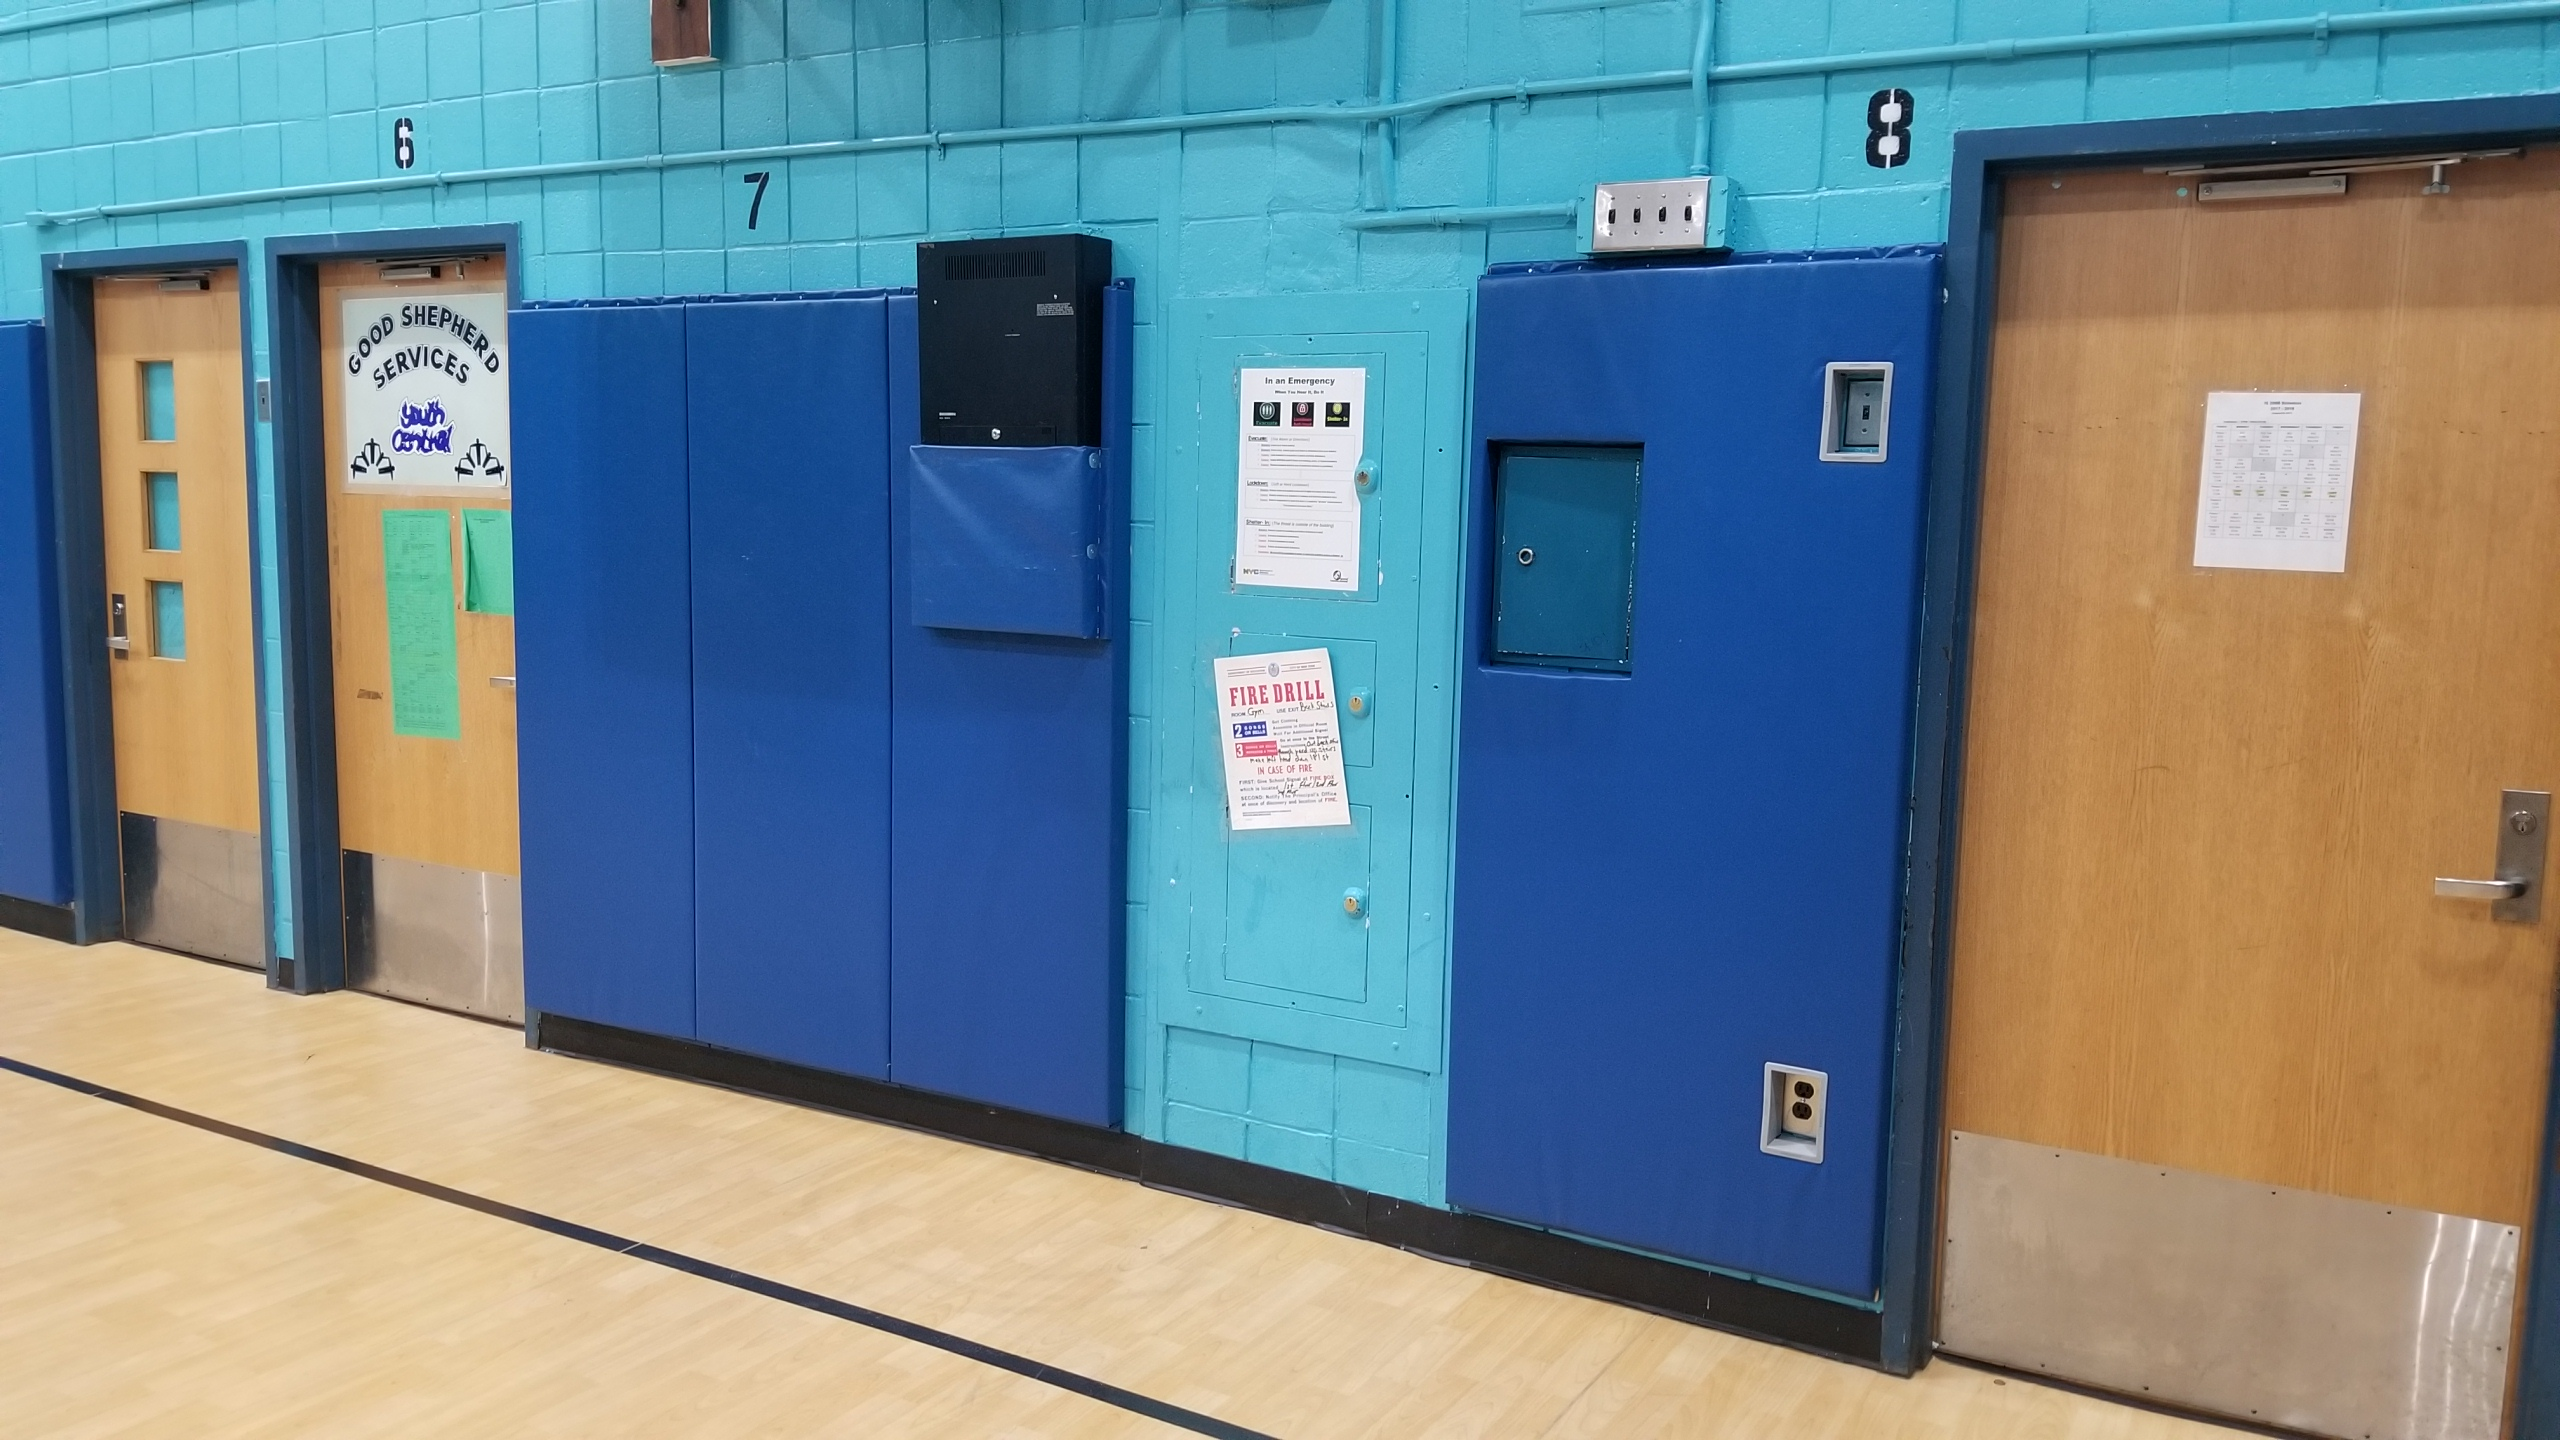 X206 Gym Wall Padding